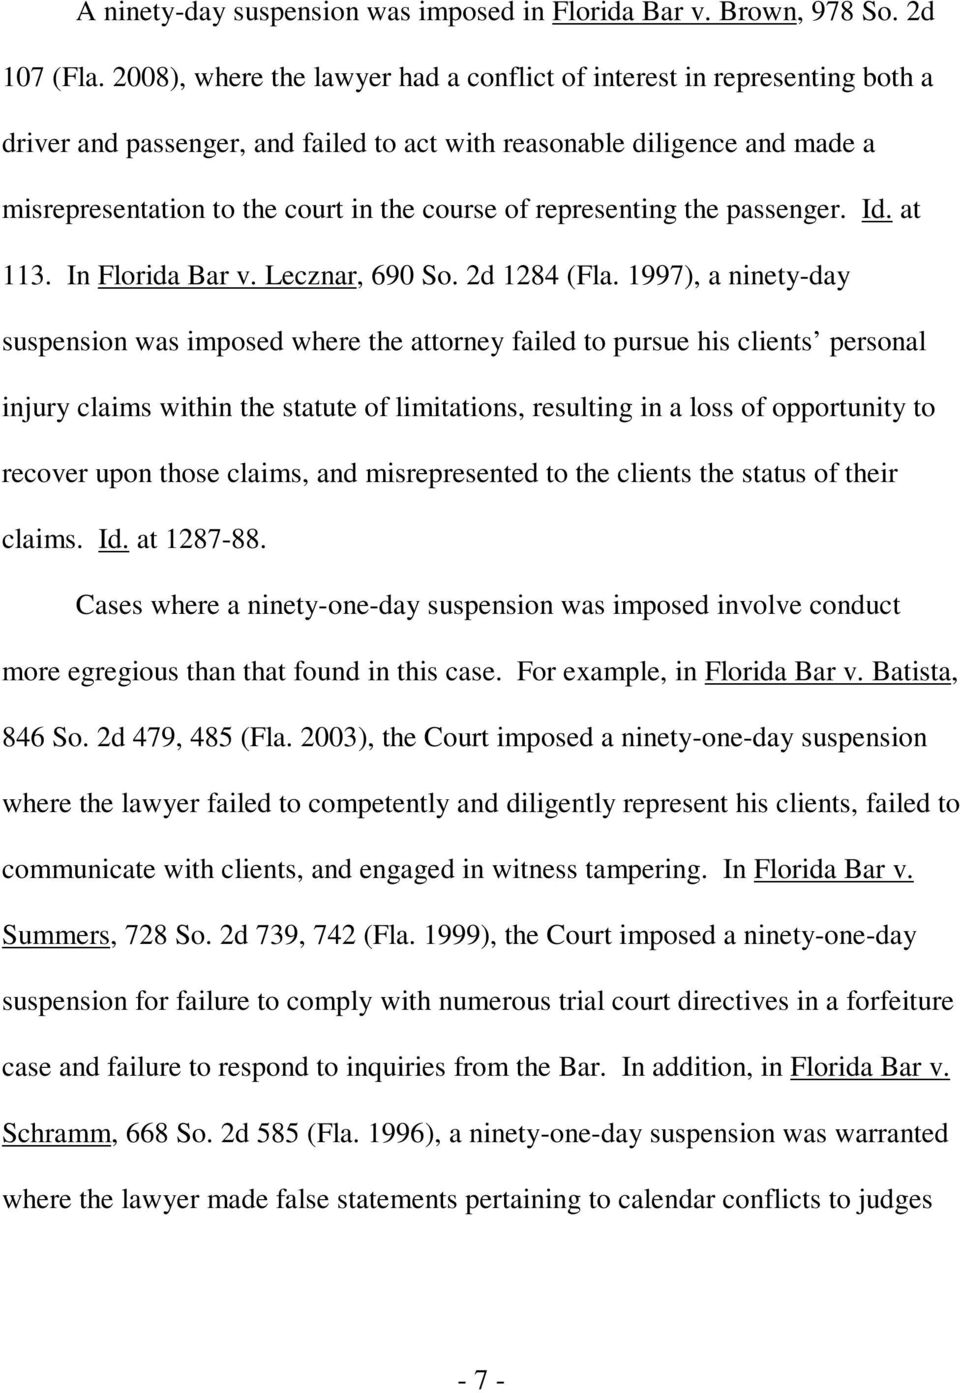 representing the passenger. Id. at 113. In Florida Bar v. Lecznar, 690 So. 2d 1284 (Fla.